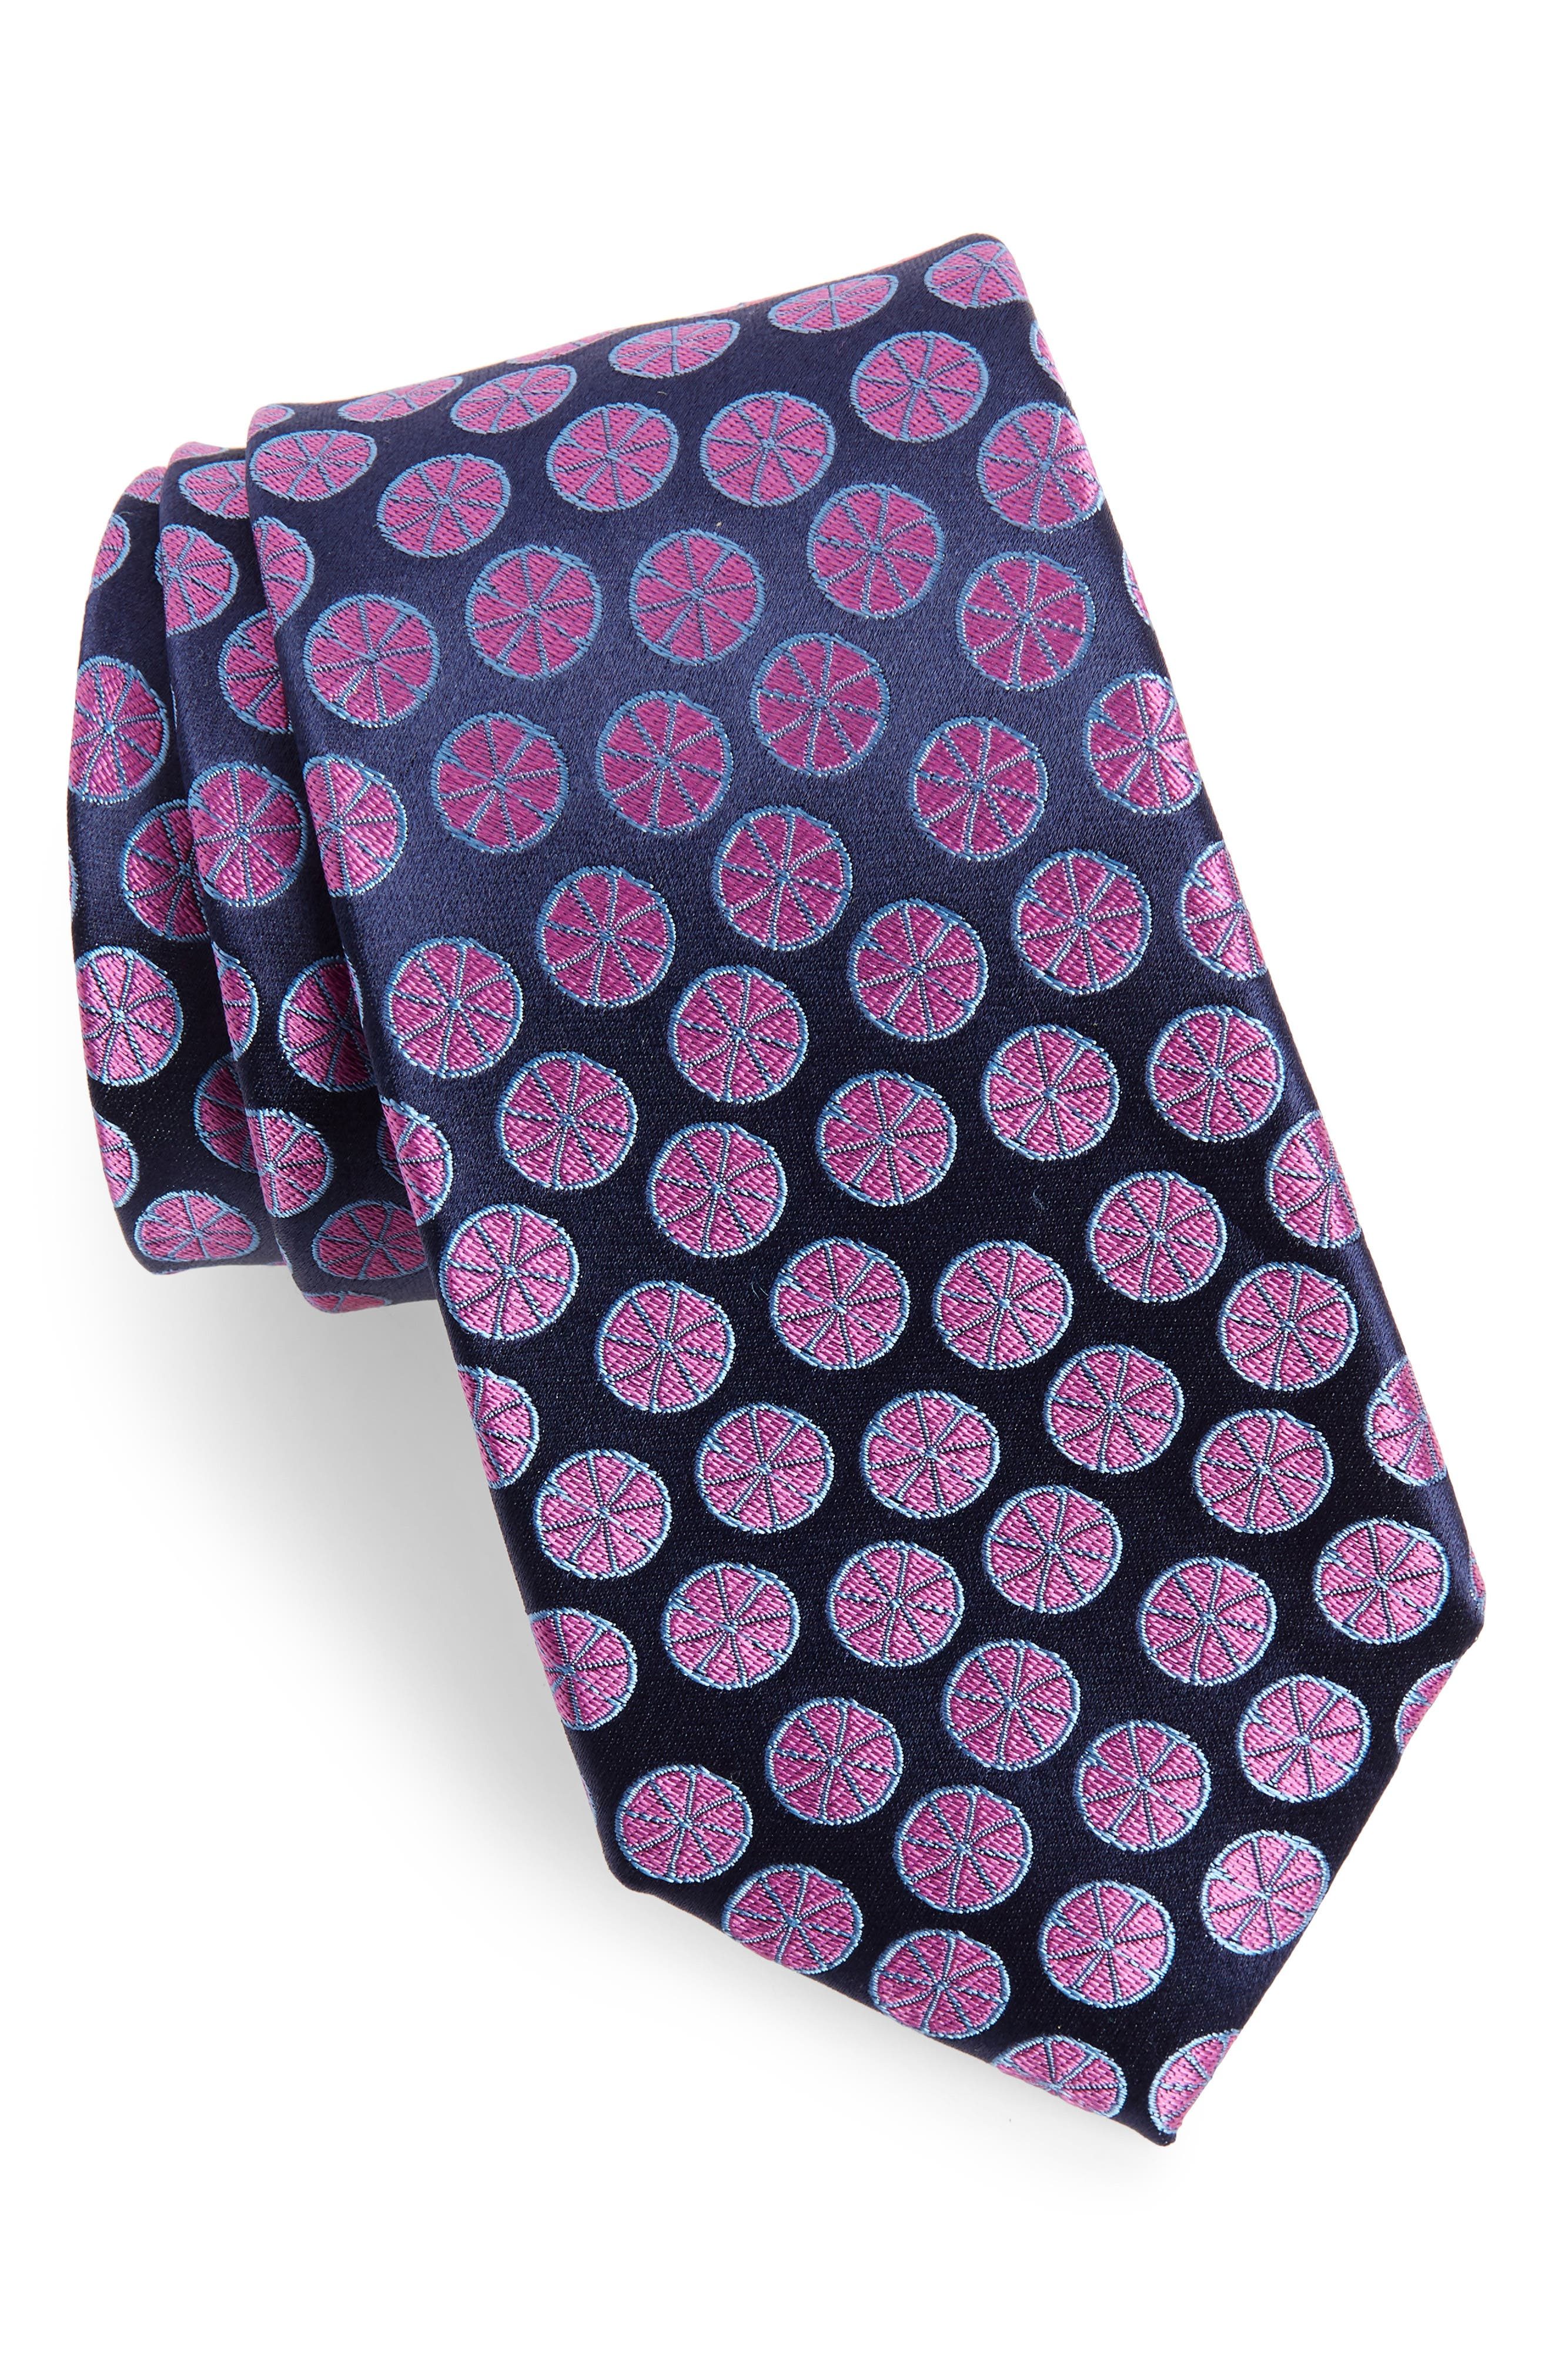 Summer Slices Medallion Silk Tie,                             Main thumbnail 1, color,                             410